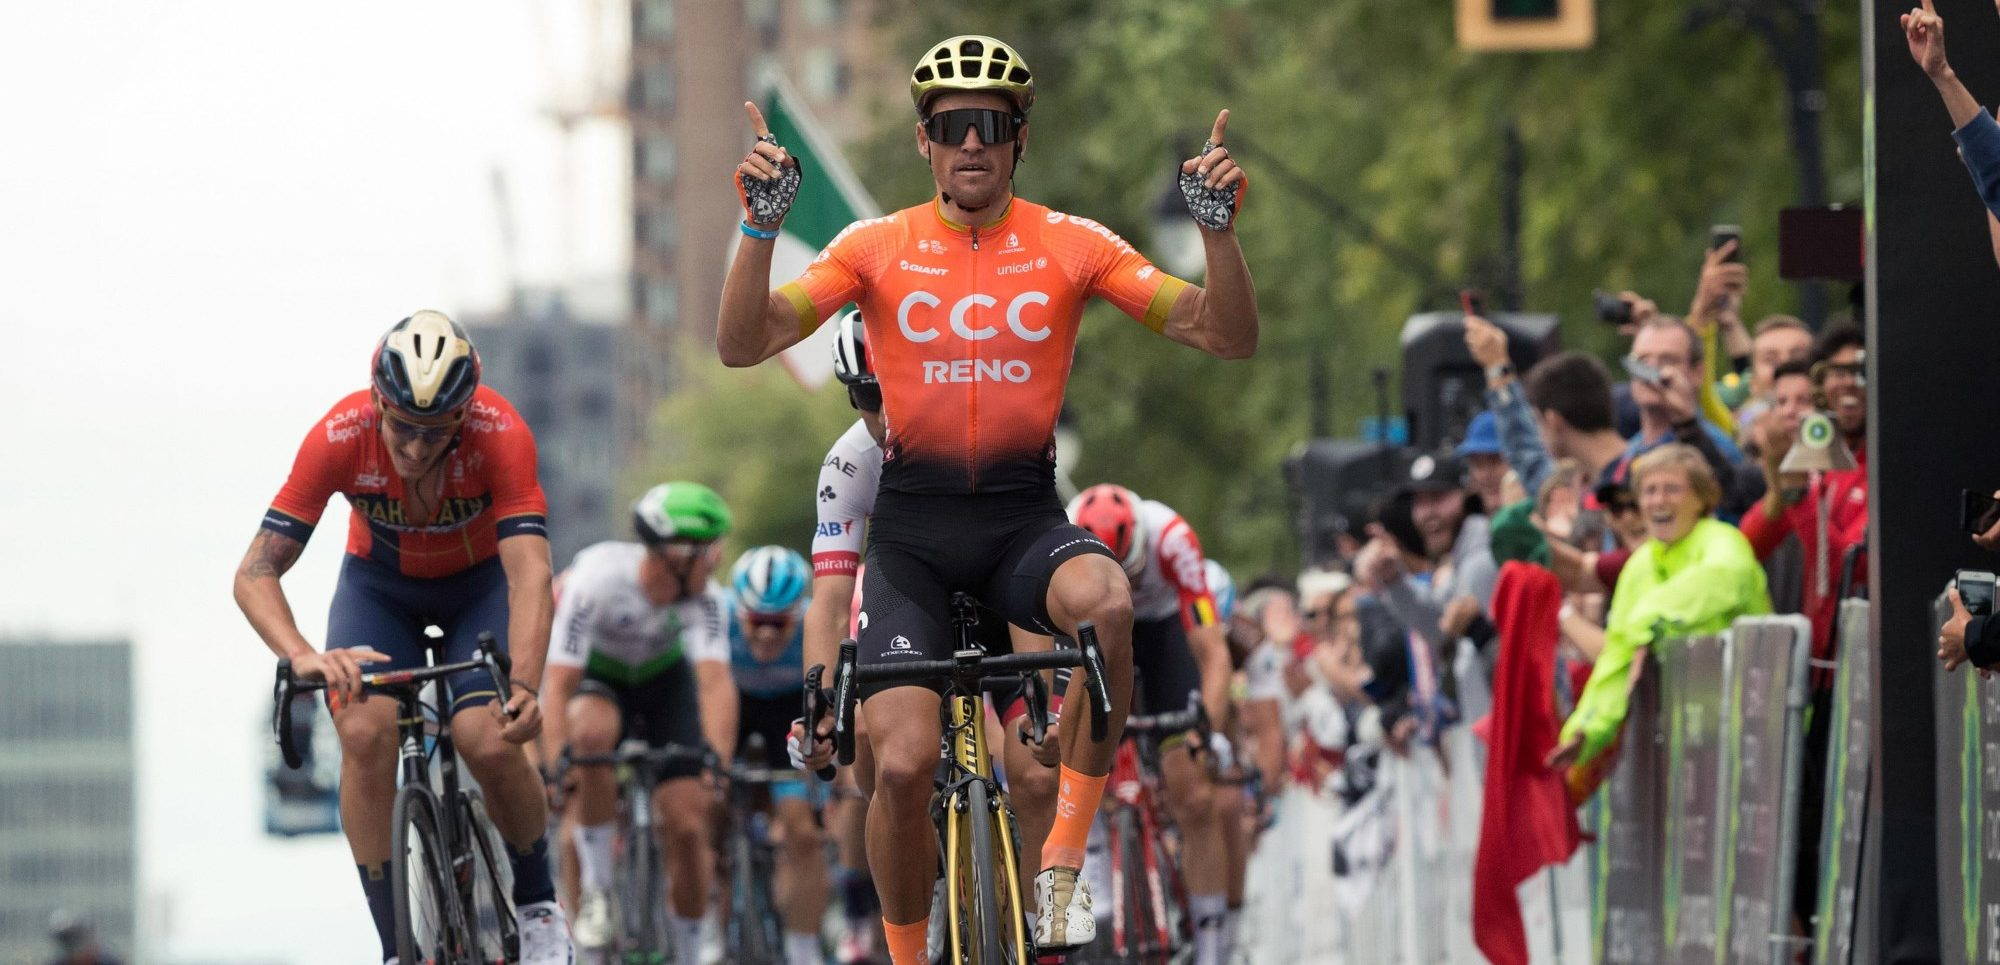 Greg Van Avermaet is de sterkste in de GP Montreal 2019